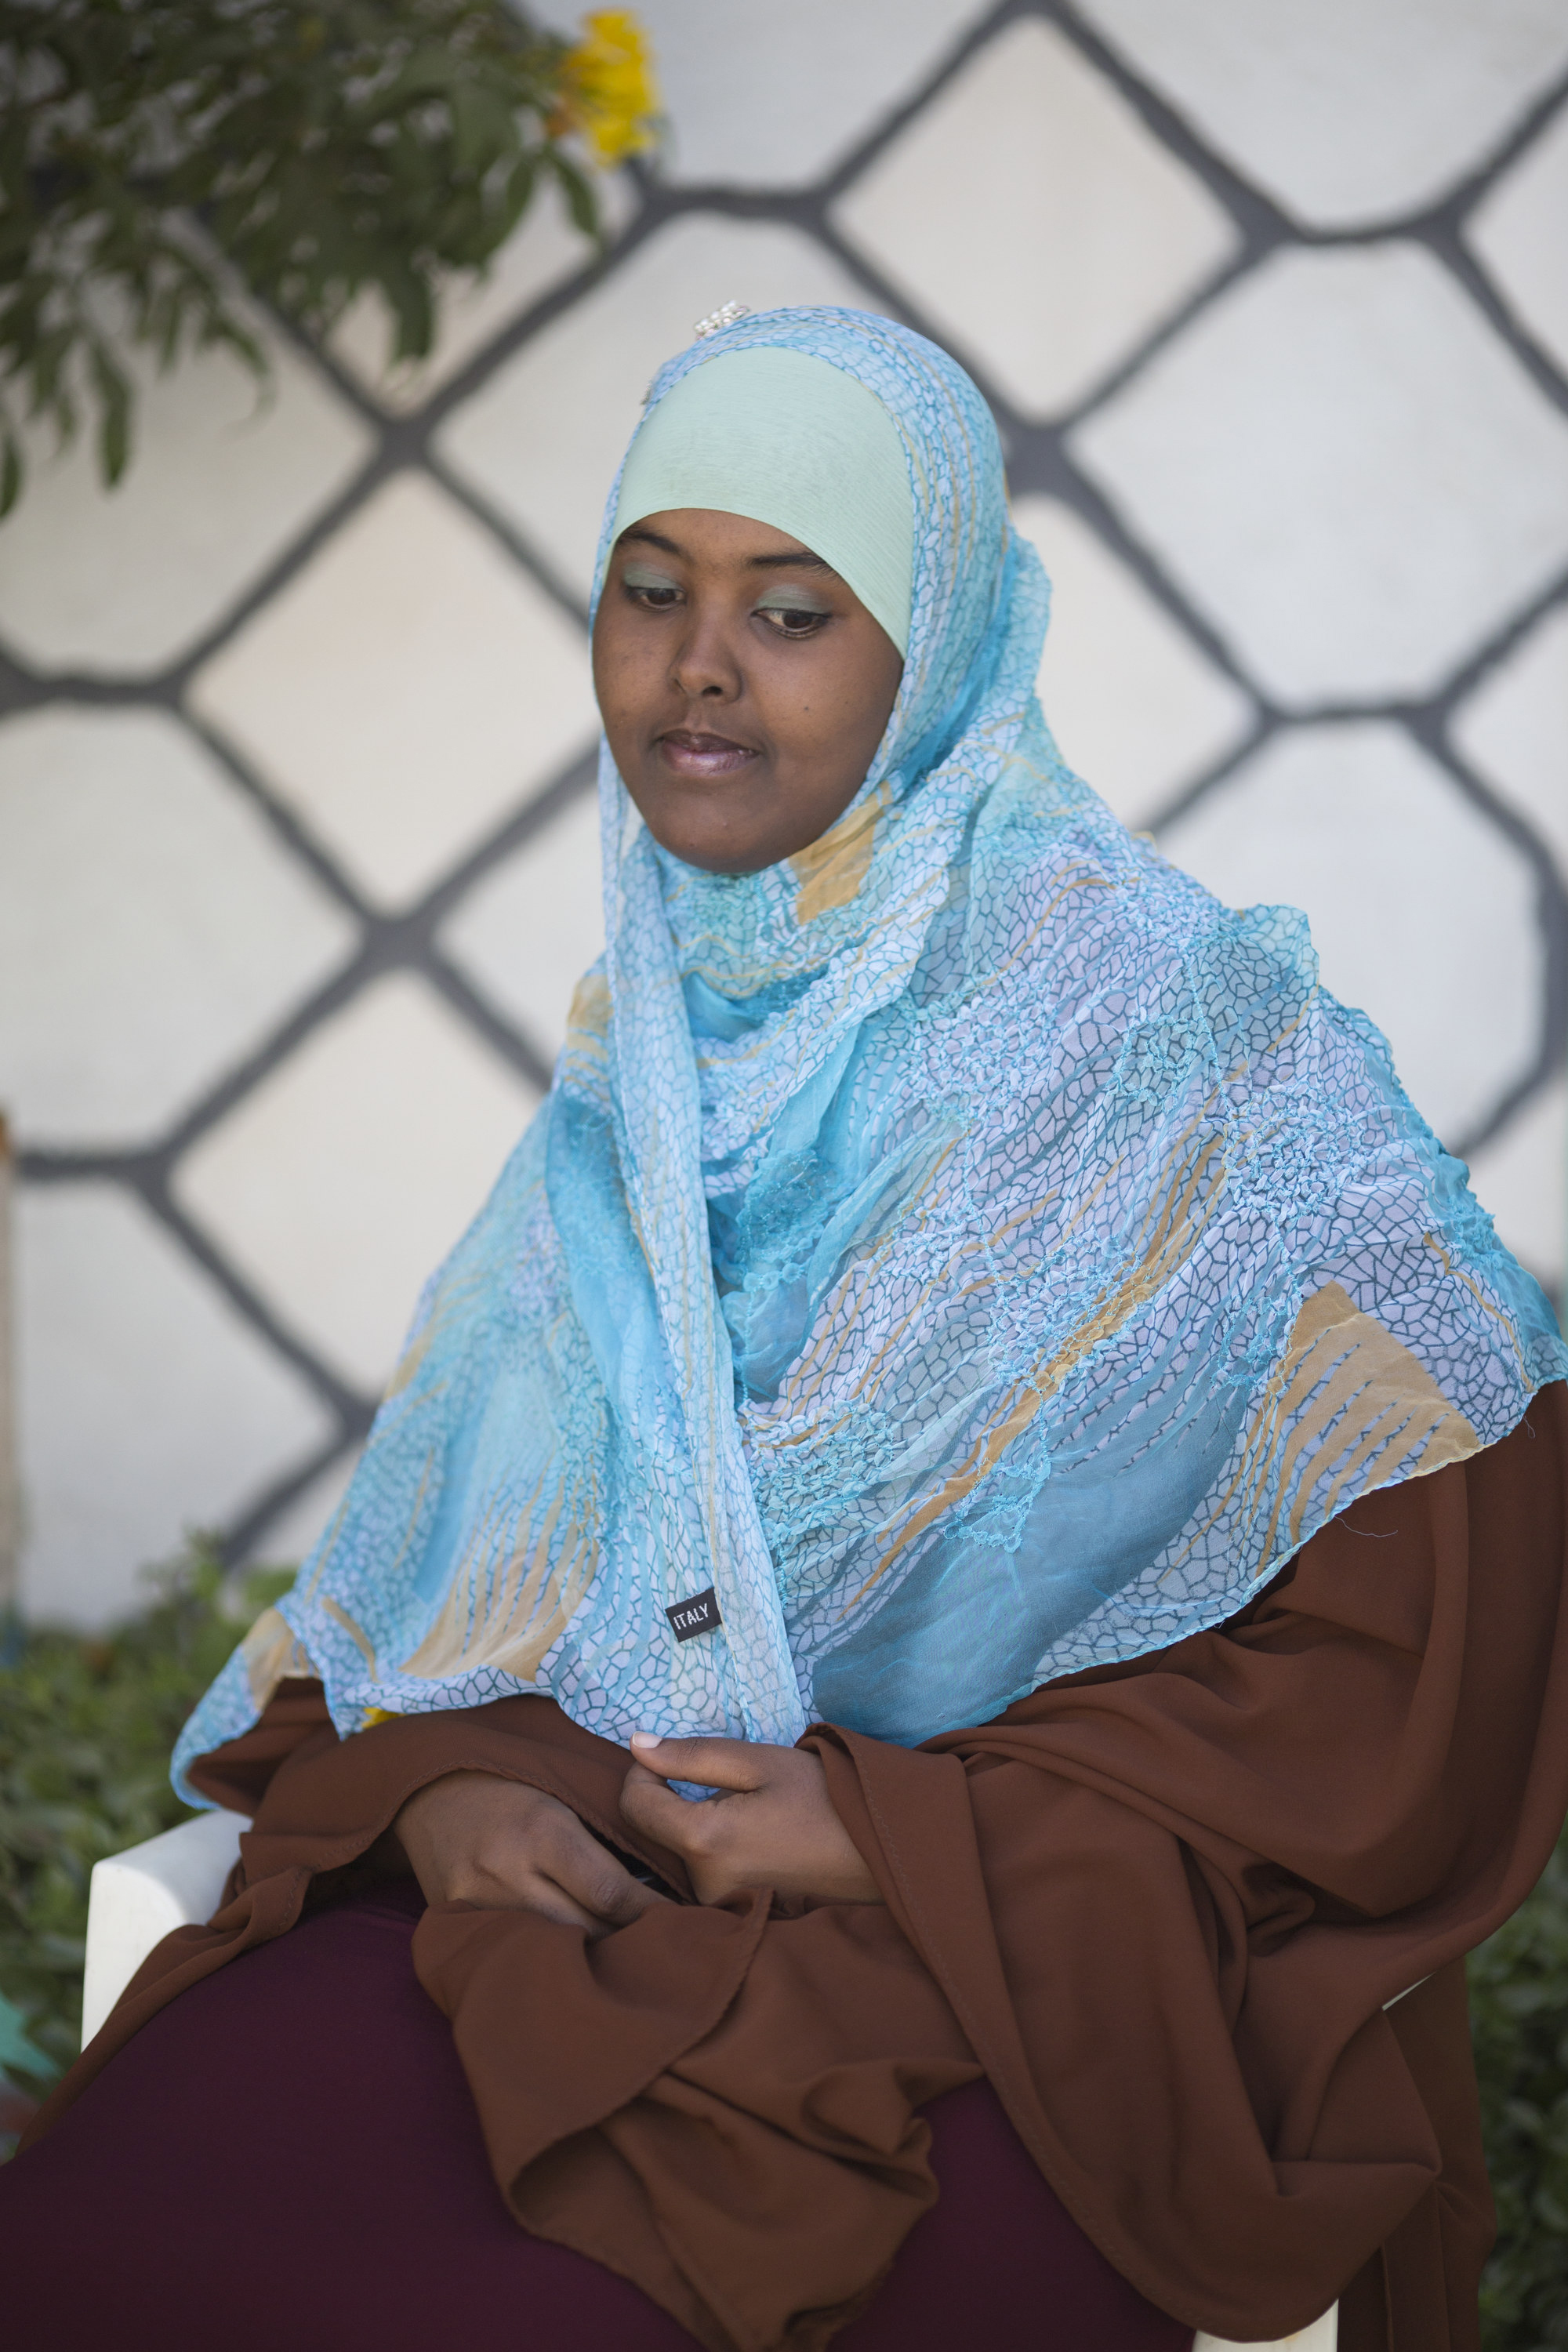 Ikram Ahmed is training to be a doctor and lives in Hargeisa, the capital of Somaliland.  Often confused with Somalia the country remains unrecognised as a country by the International Community, however many of the younger generation are now working to achieve better education and to work towards gaining independence for the country which survived a bloody civil war.